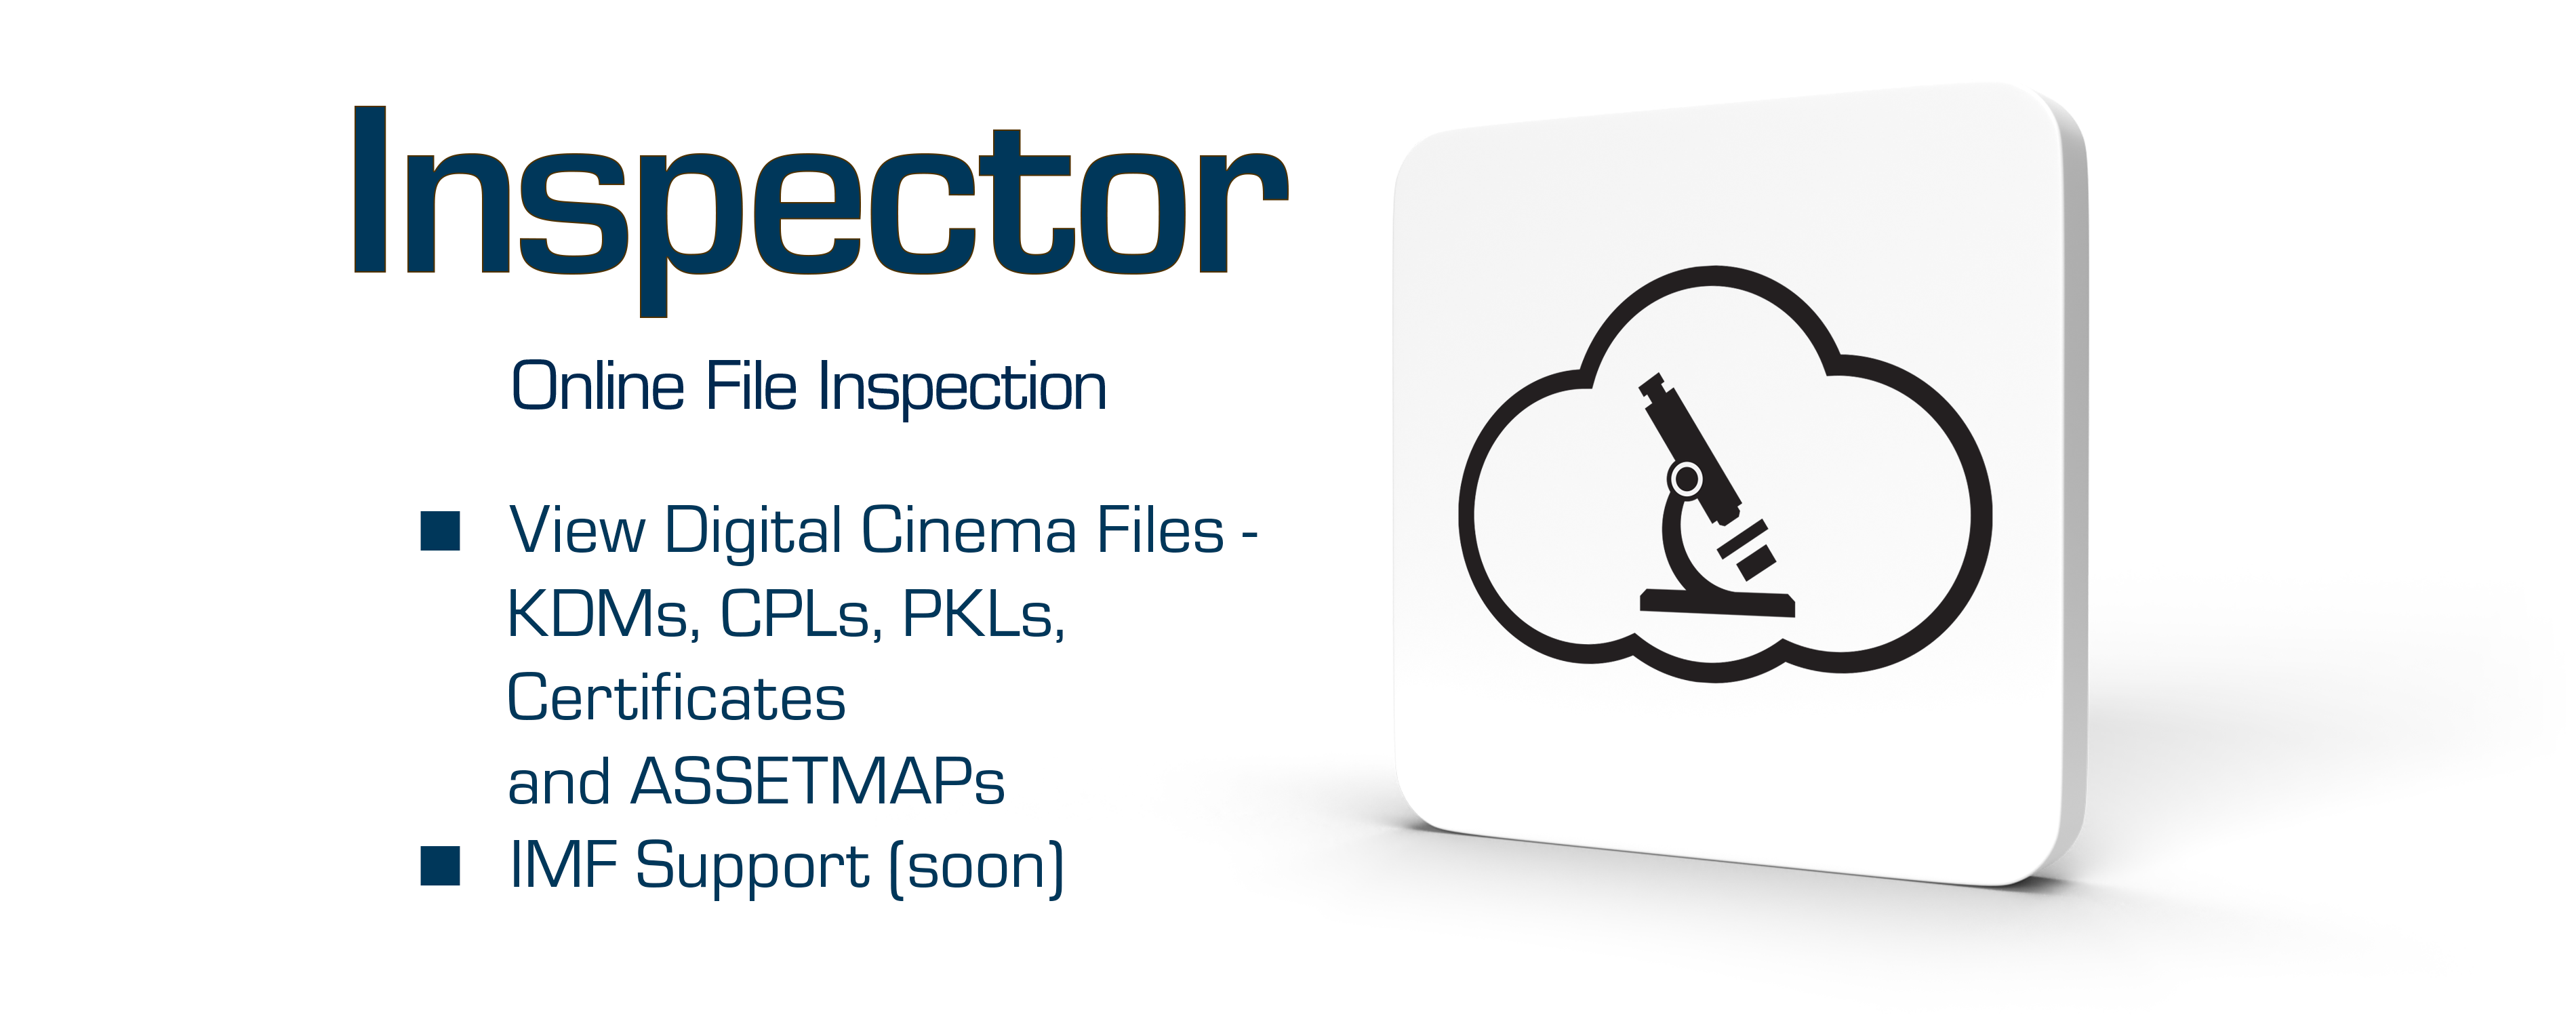 Inspector - Online File Inspection - View Digital Cinema Files - KDMs, CPLs, PKLs, Certificates and ASSETMAPs. IMF SUpport soon.